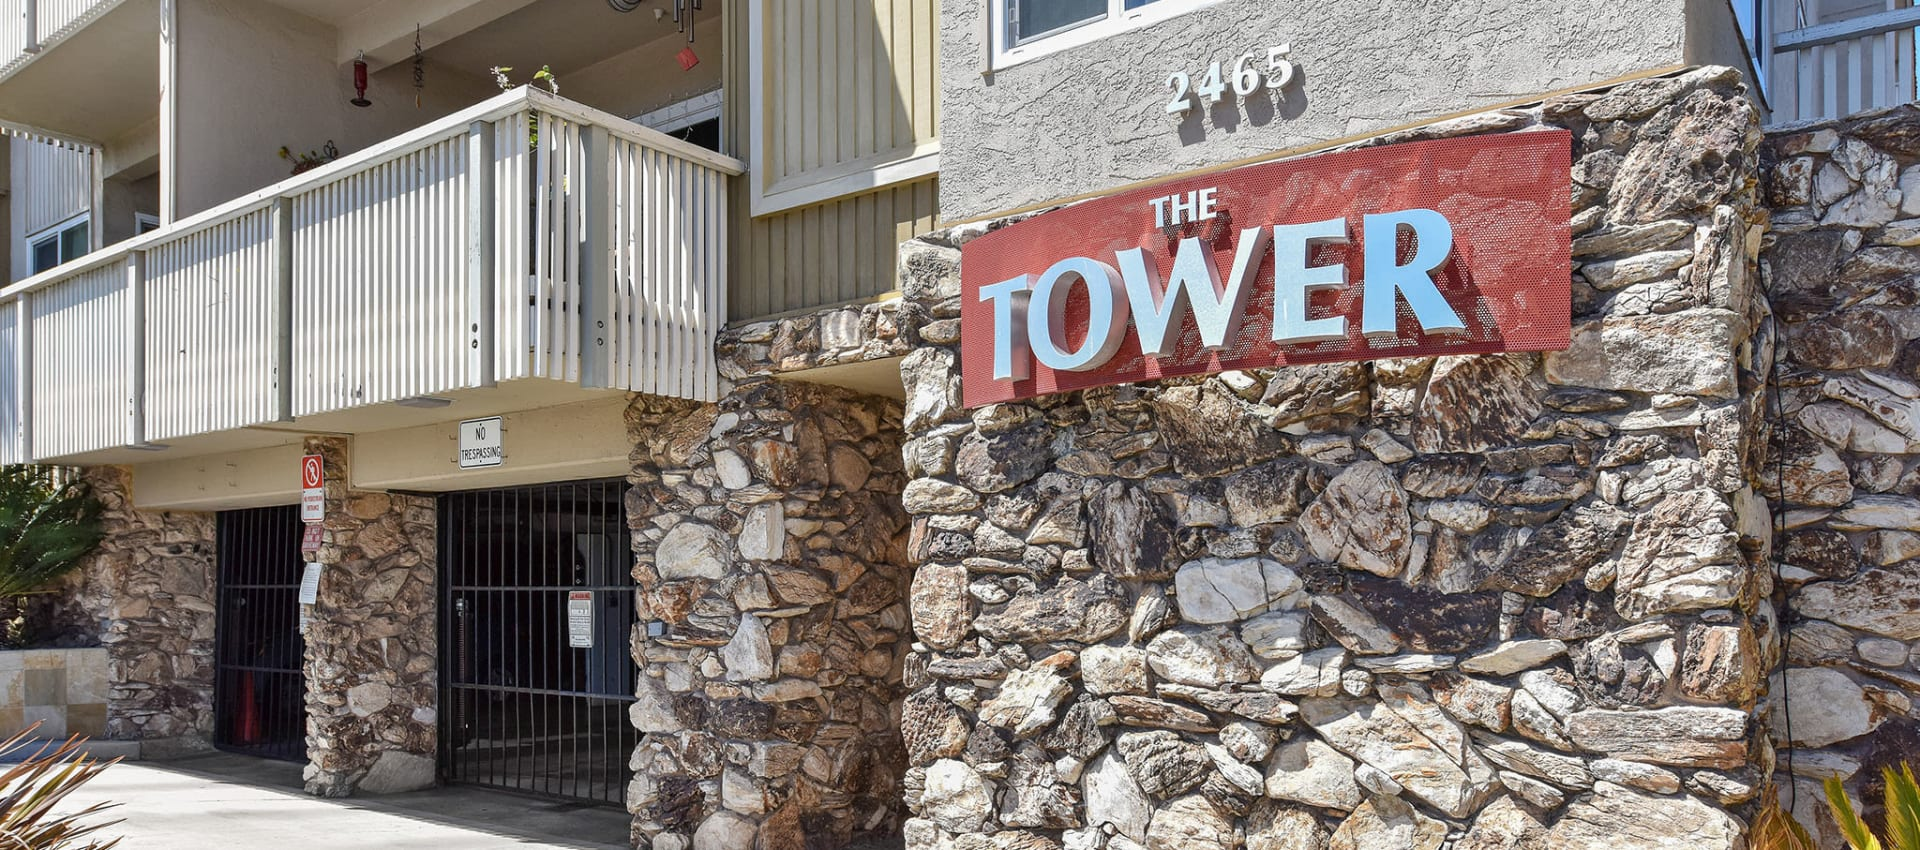 The Tower sign at apartments in Alameda, CA